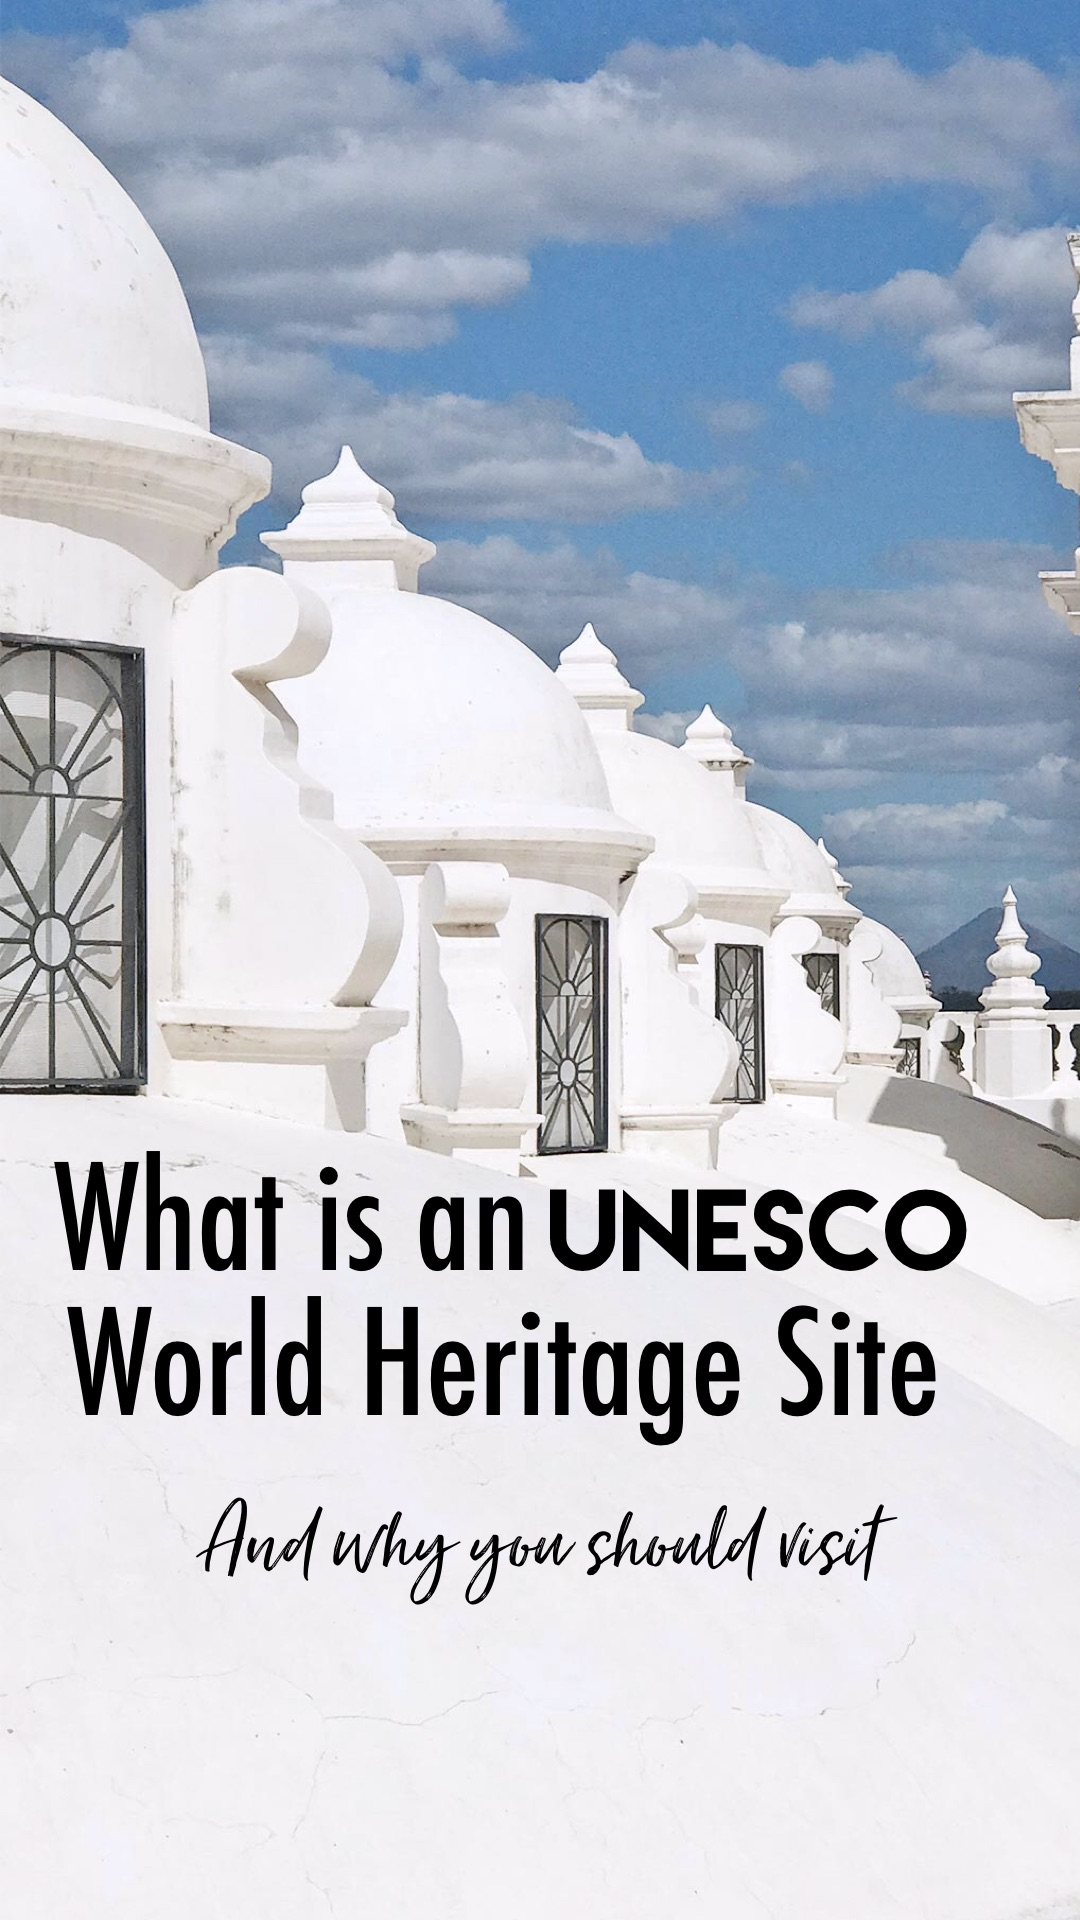 What is an UNESCO World Heritage Site?